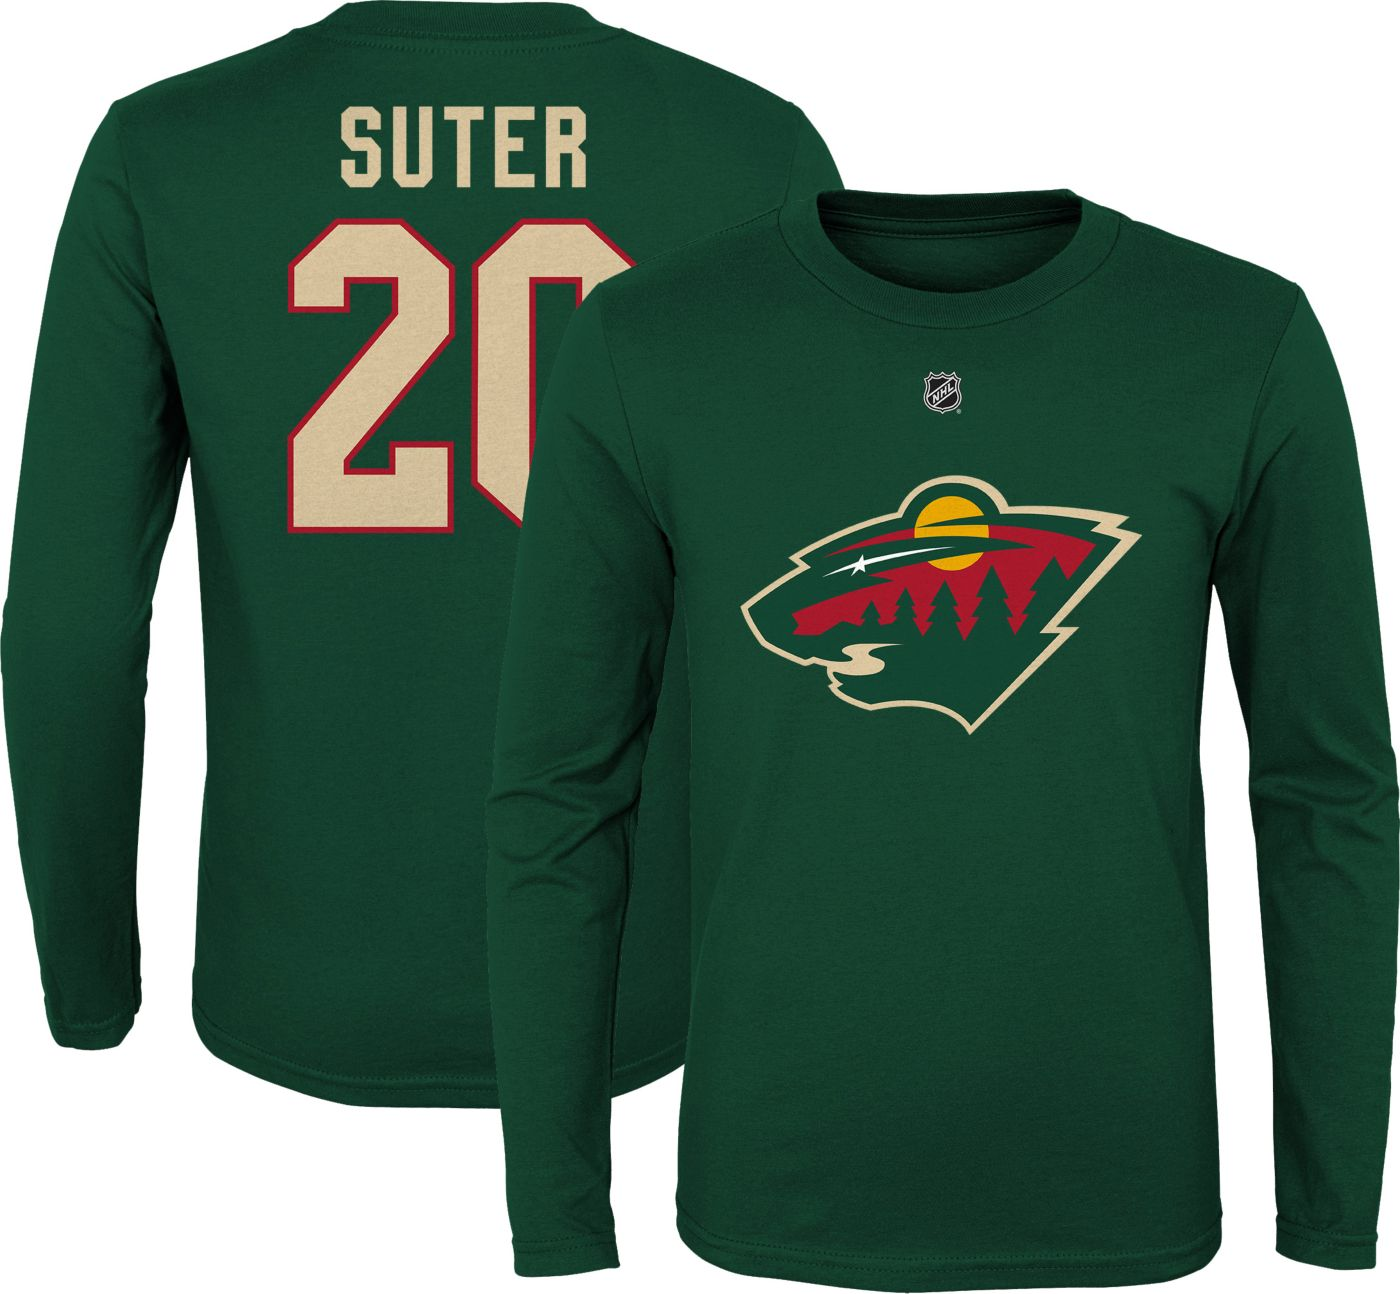 NHL Youth Minnesota Wild Ryan Suter #20 Green Long Sleeve Player Shirt